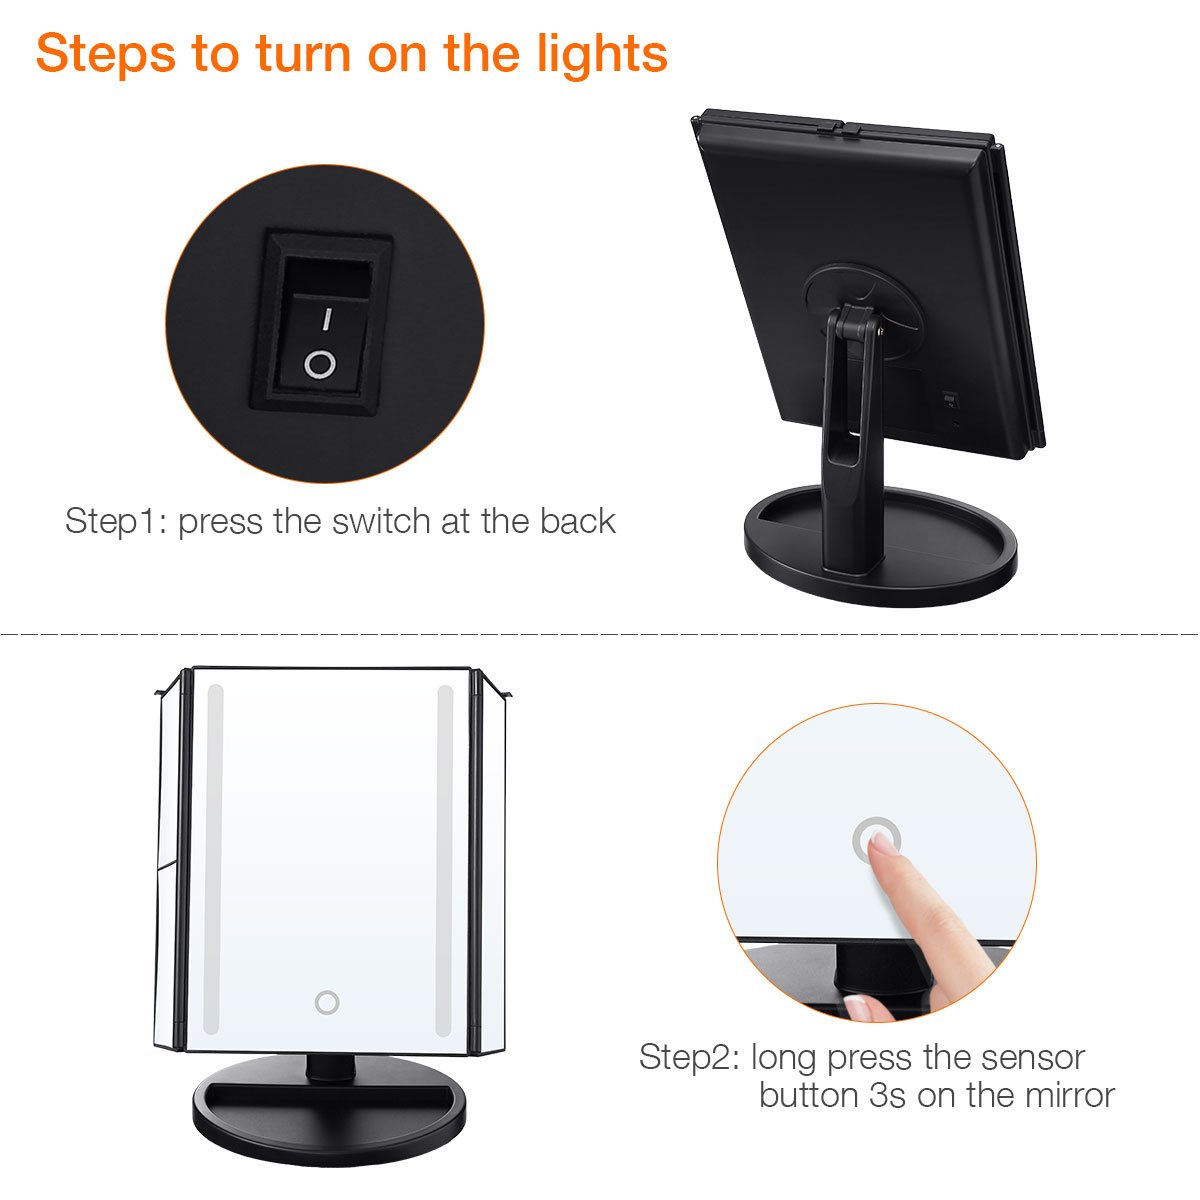 LEPO LED Makeup Mirror, Makeup Vanity Mirror with 1X/2X/3X/10X Magnification, Cosmetic Mirror with 24 LED Lights, 180 Degree Adjustable Rotation (Black) by LEPO (Image #5)